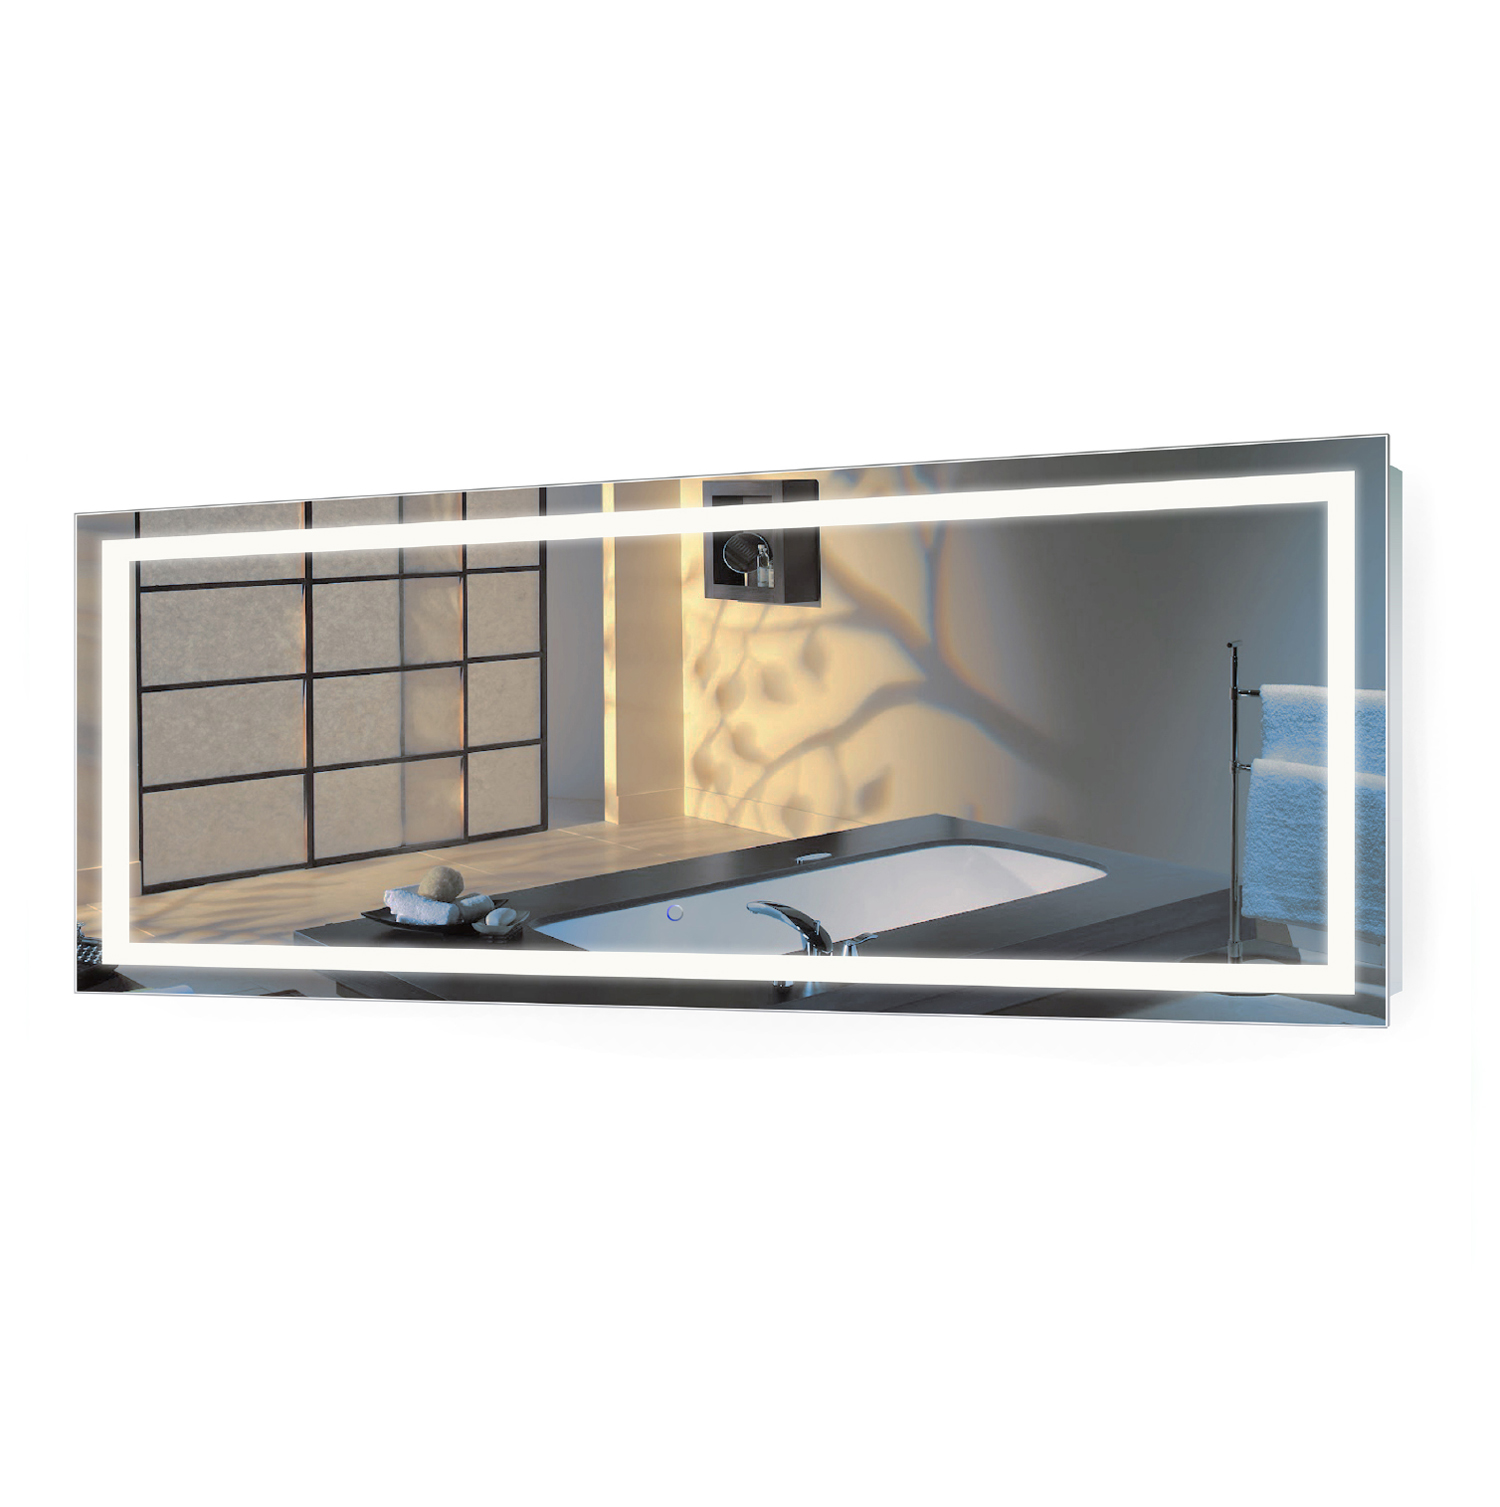 Lighted Bathroom Wall Mirror Large: Large 72 Inch X 30 Inch LED Bathroom Mirror